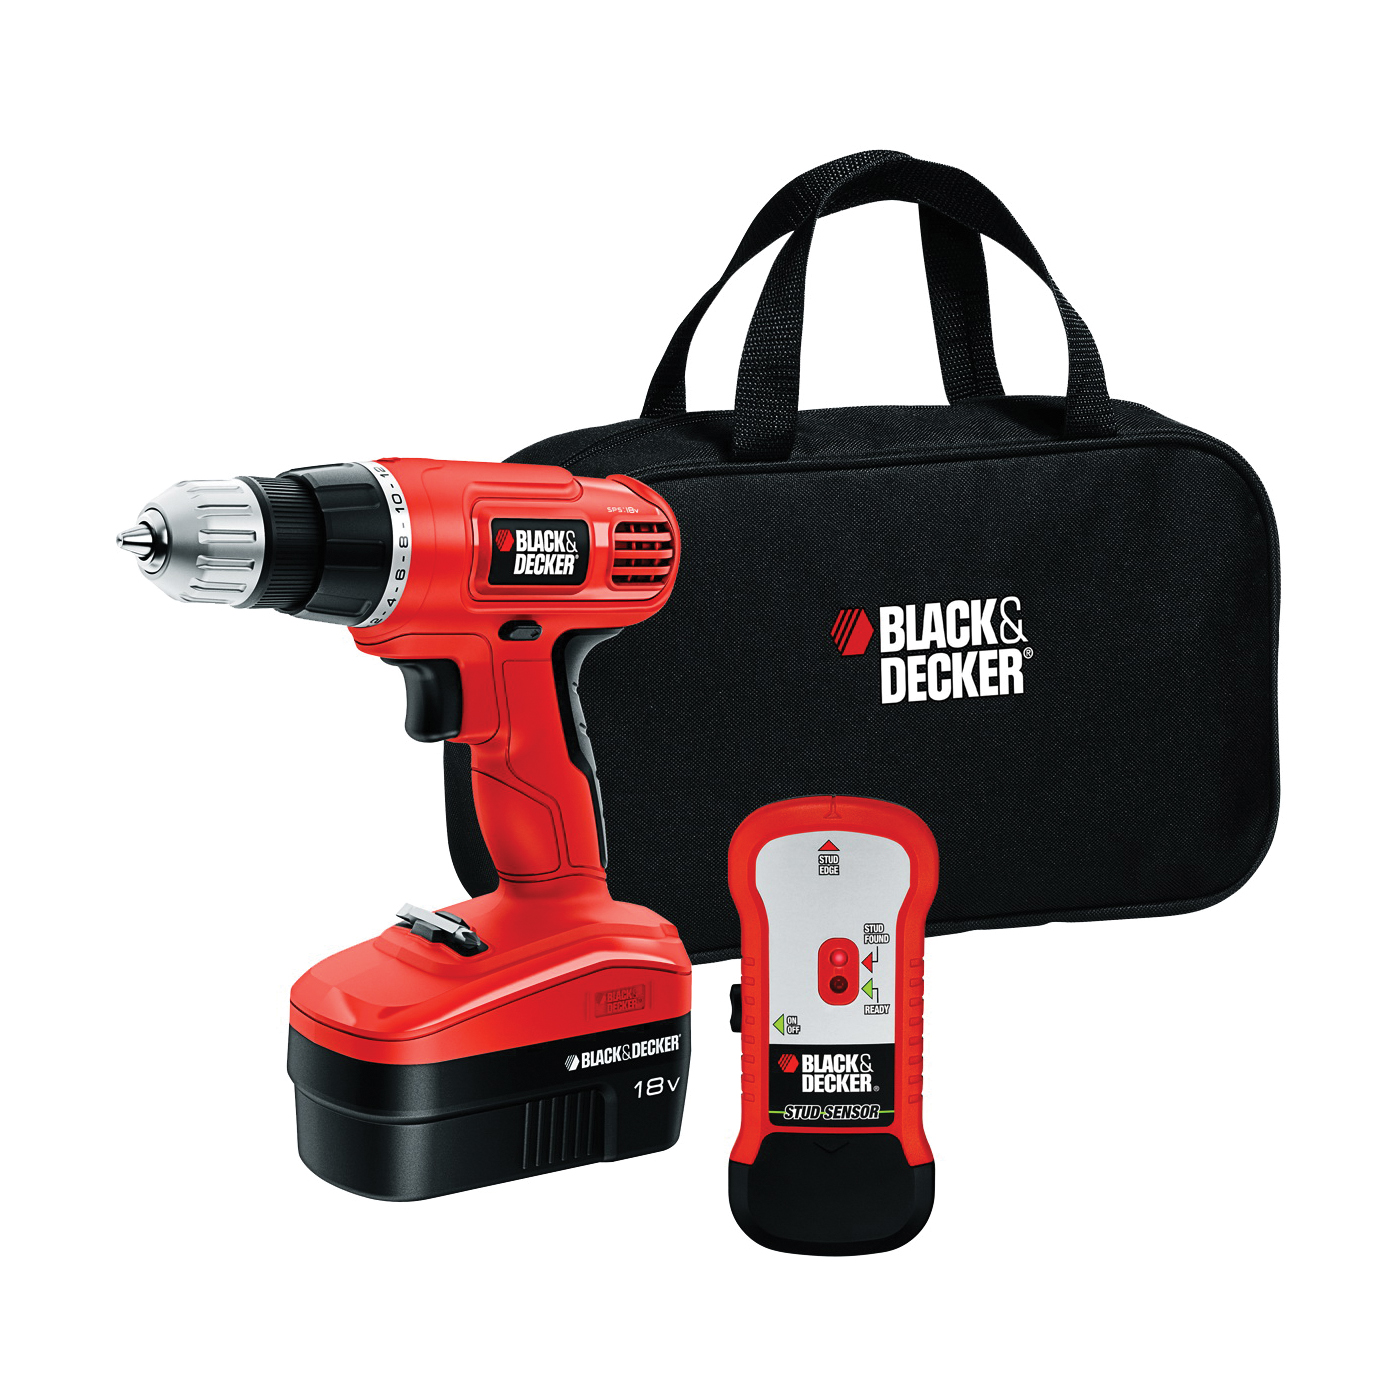 Picture of Black+Decker GCO18SFB Drill Kit, Battery Included: Yes